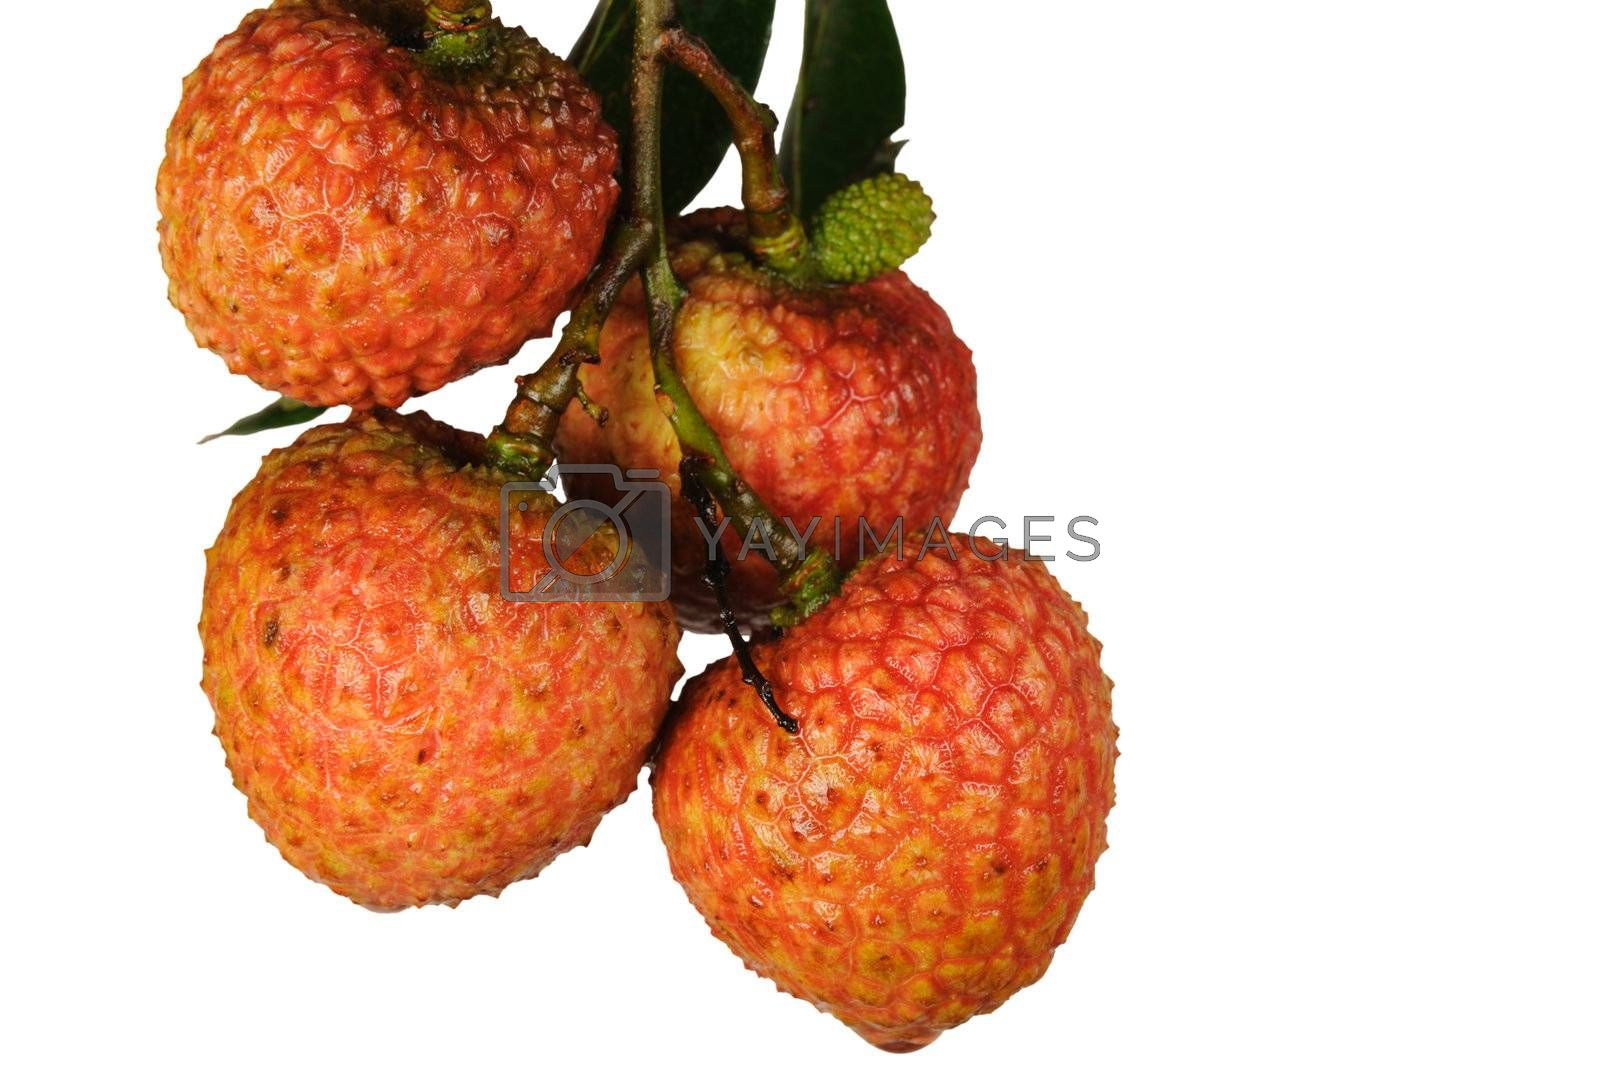 Litchi with green leaves isolated on white background